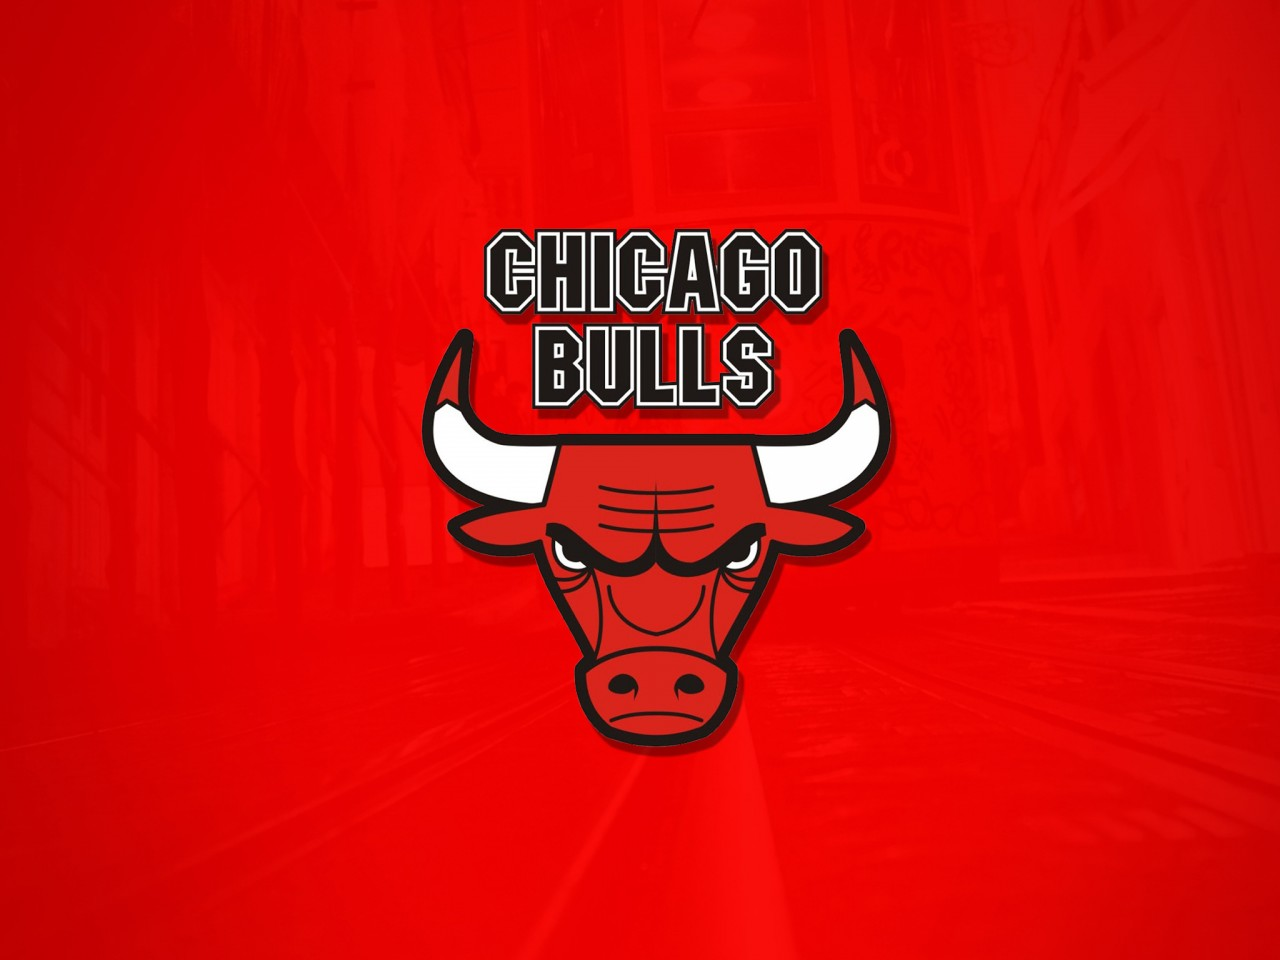 Cute Wallpapers For Iphone 6 Hd The Chicago Bulls Wallpapers Hd Wallpapers Id 17704